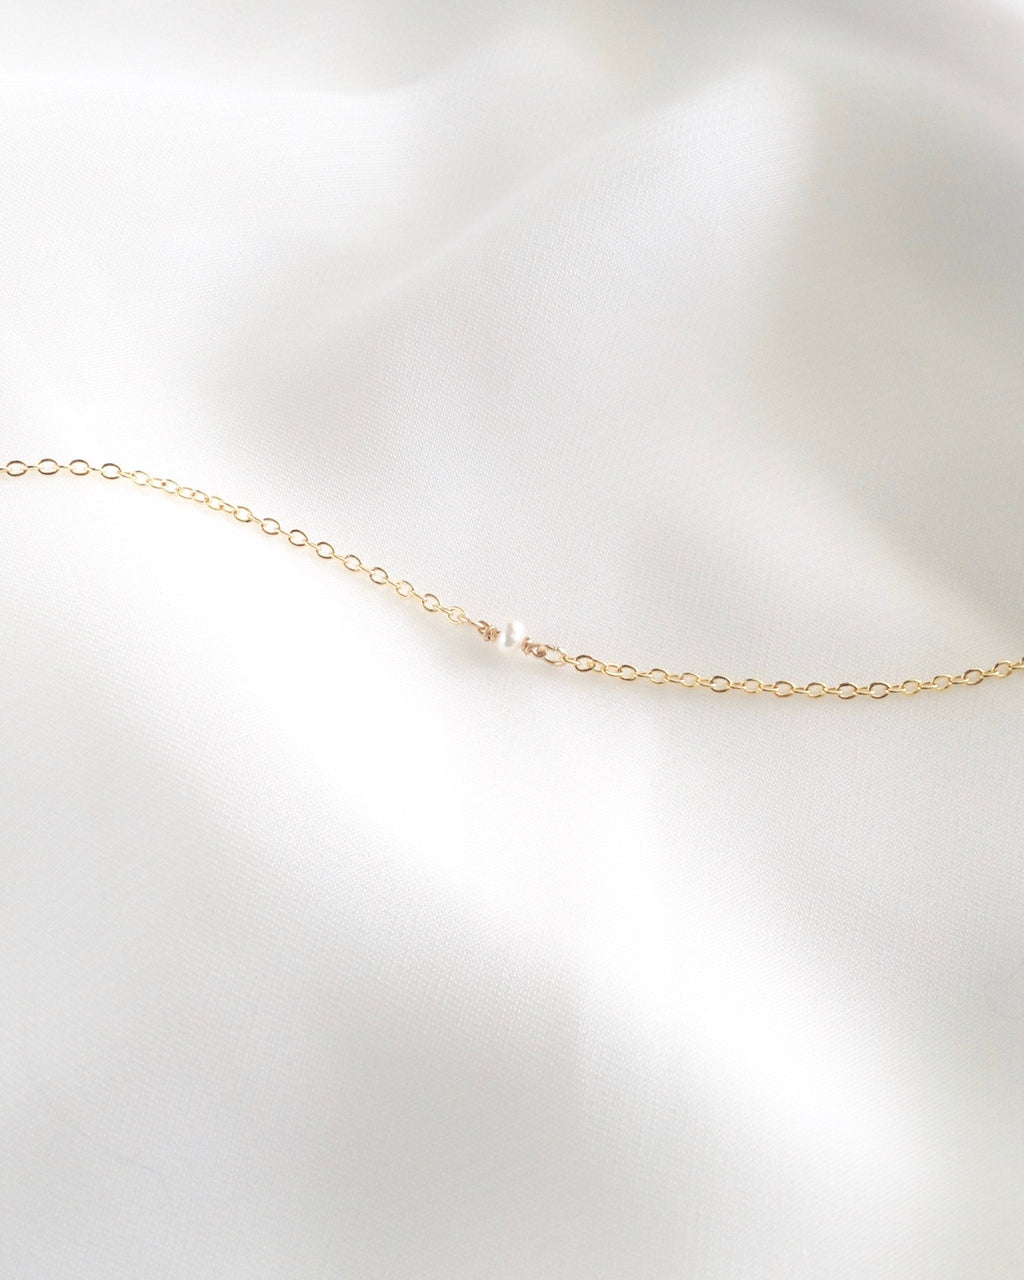 Single Pearl Dainty Chain Bracelet In Gold Filled or Sterling Silver | IB Jewelry